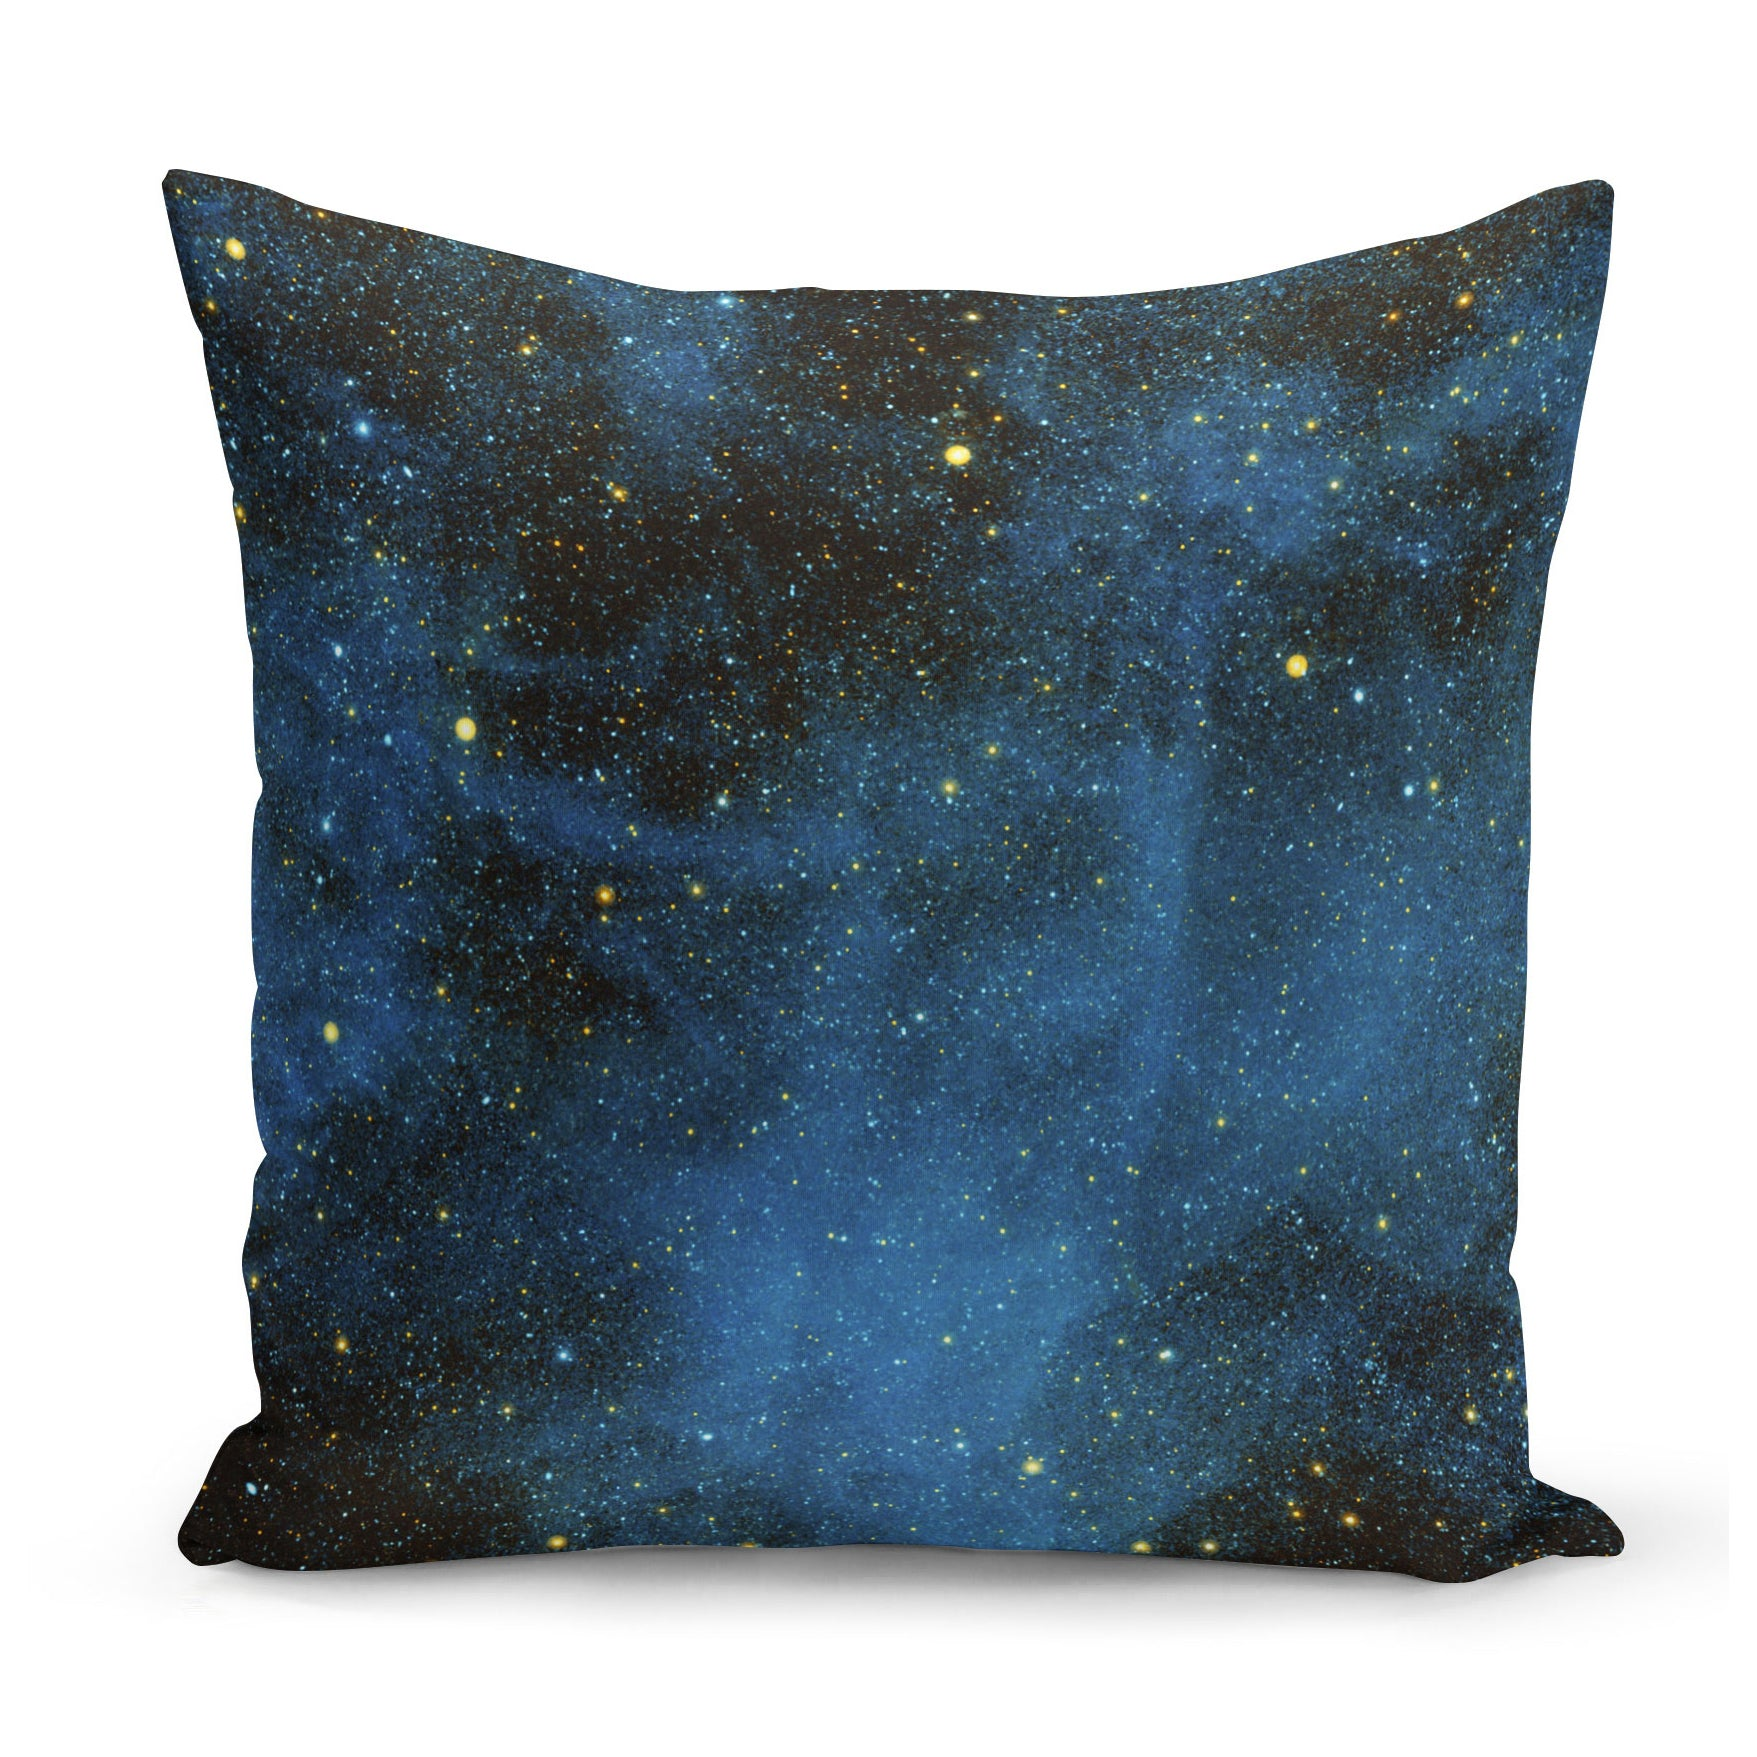 cushion showing image of space, specifically the star CW Leo